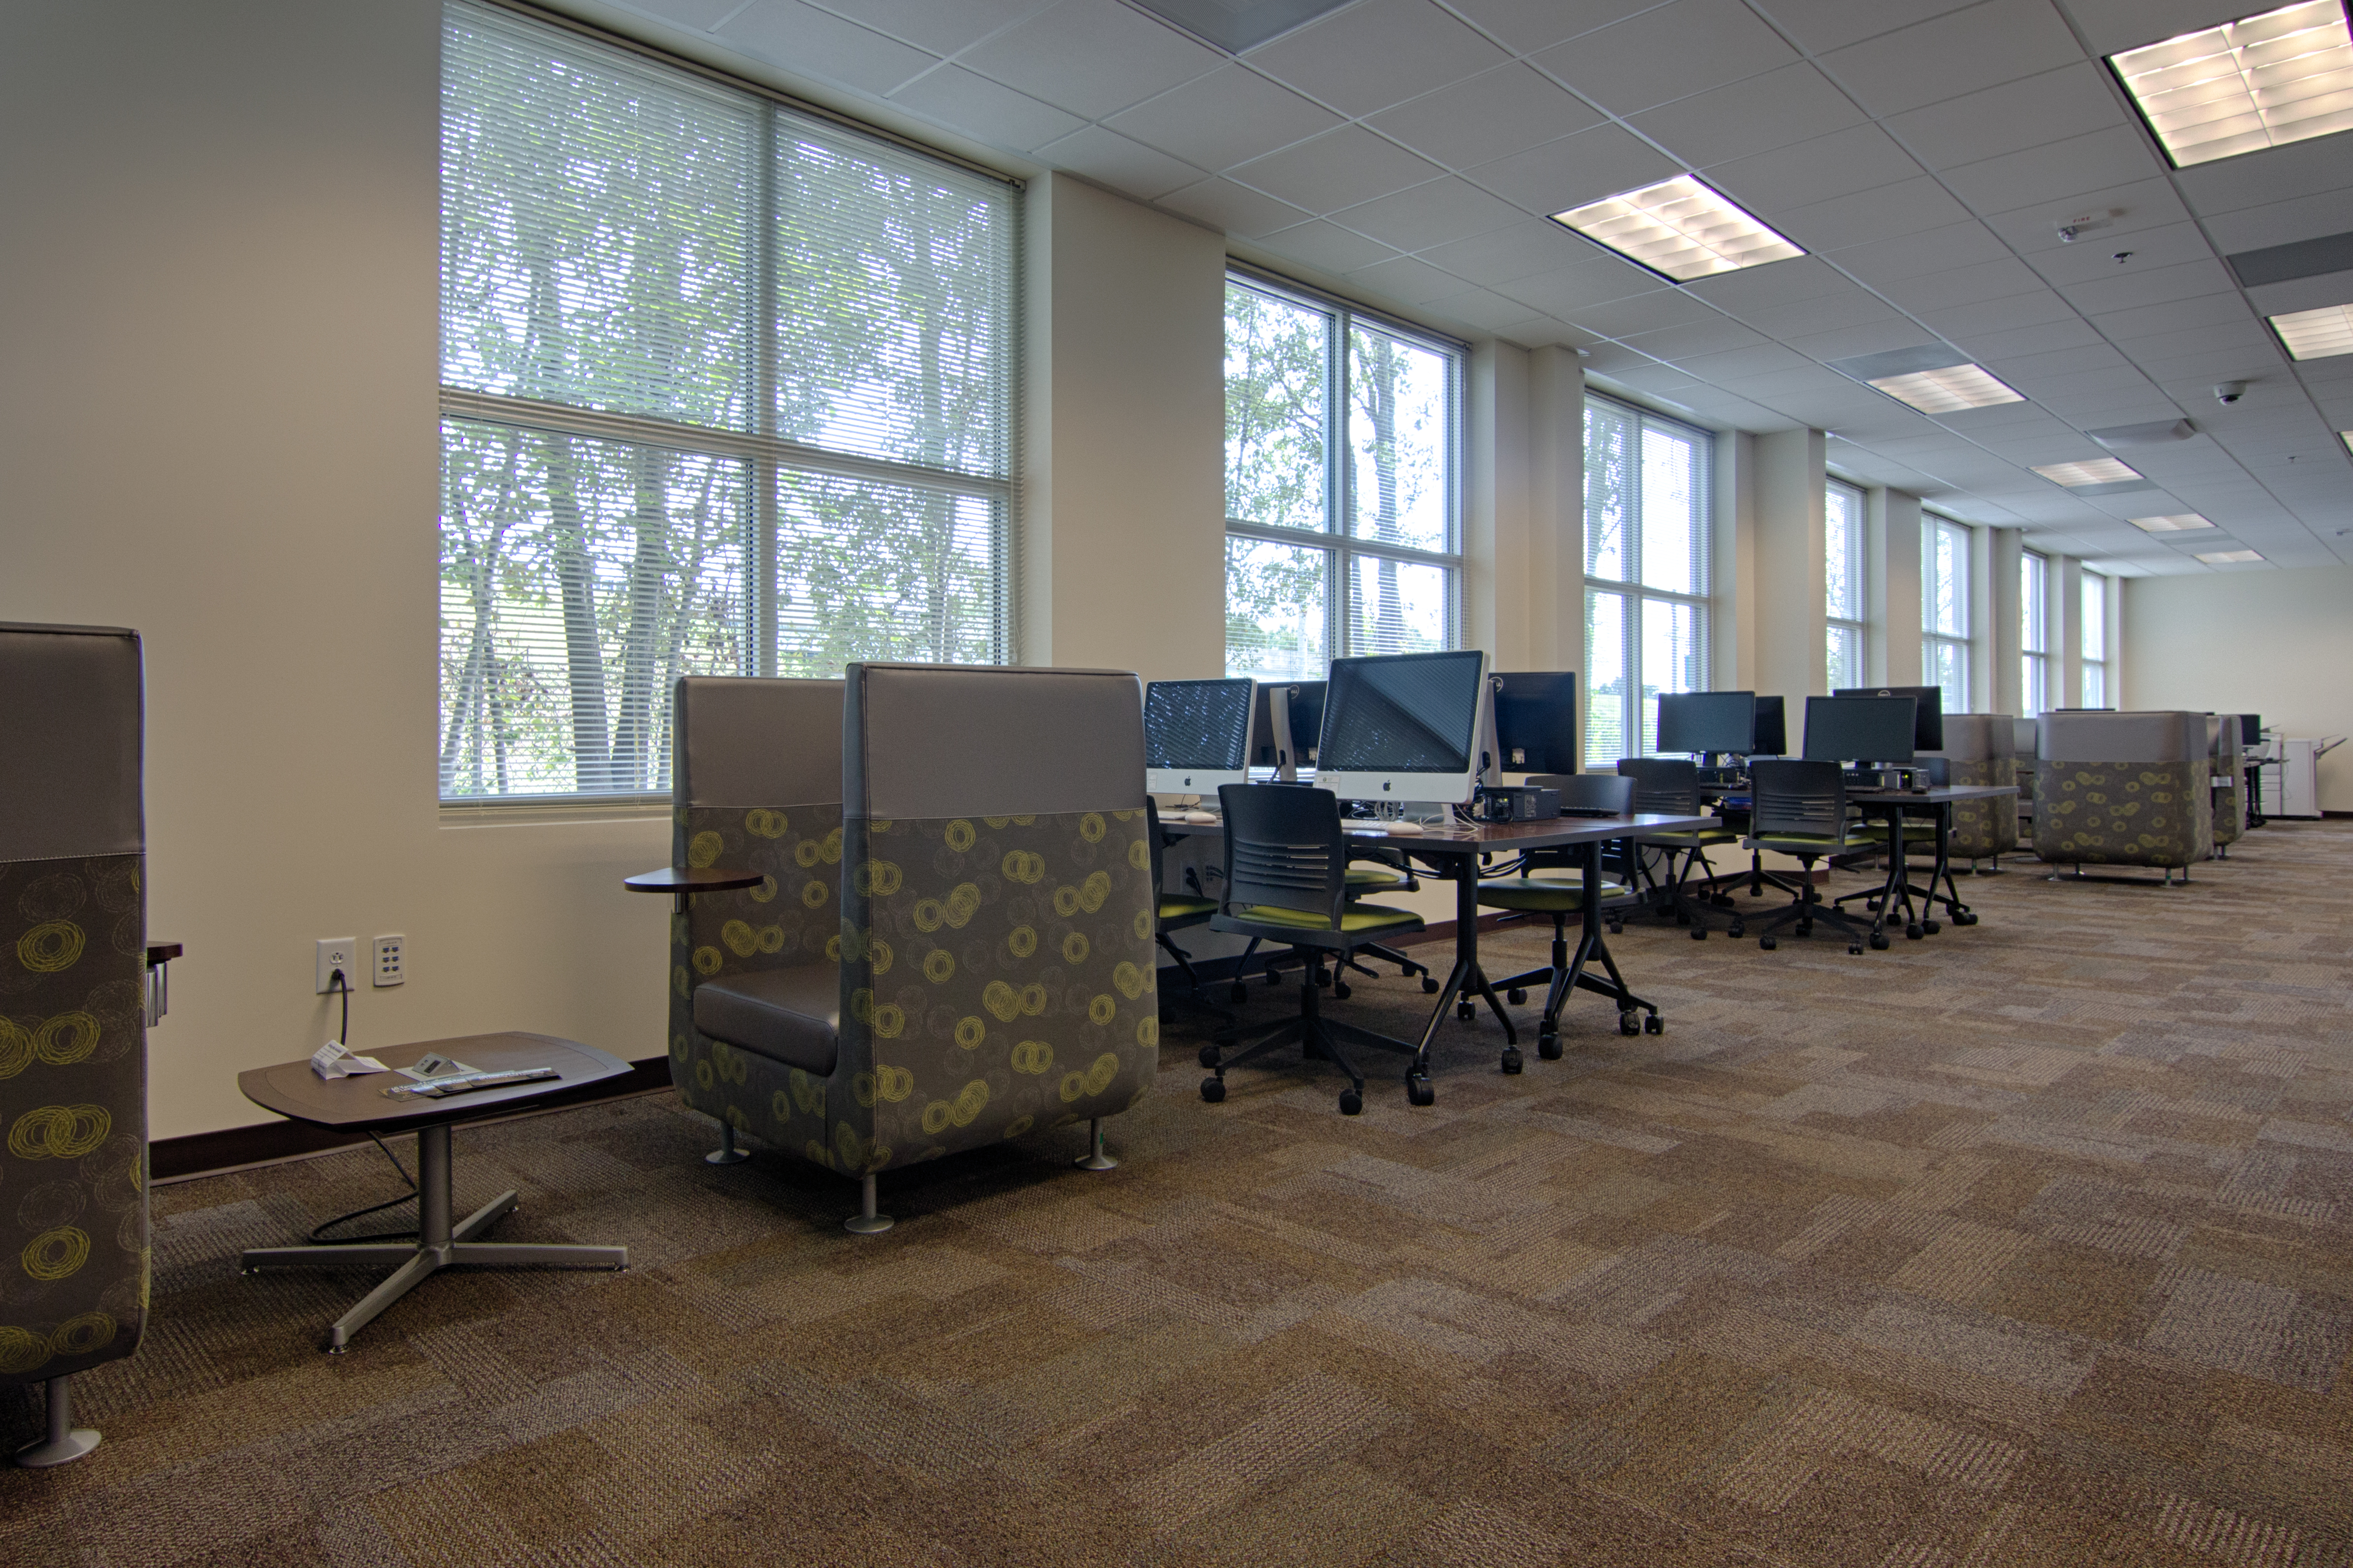 library view of seating